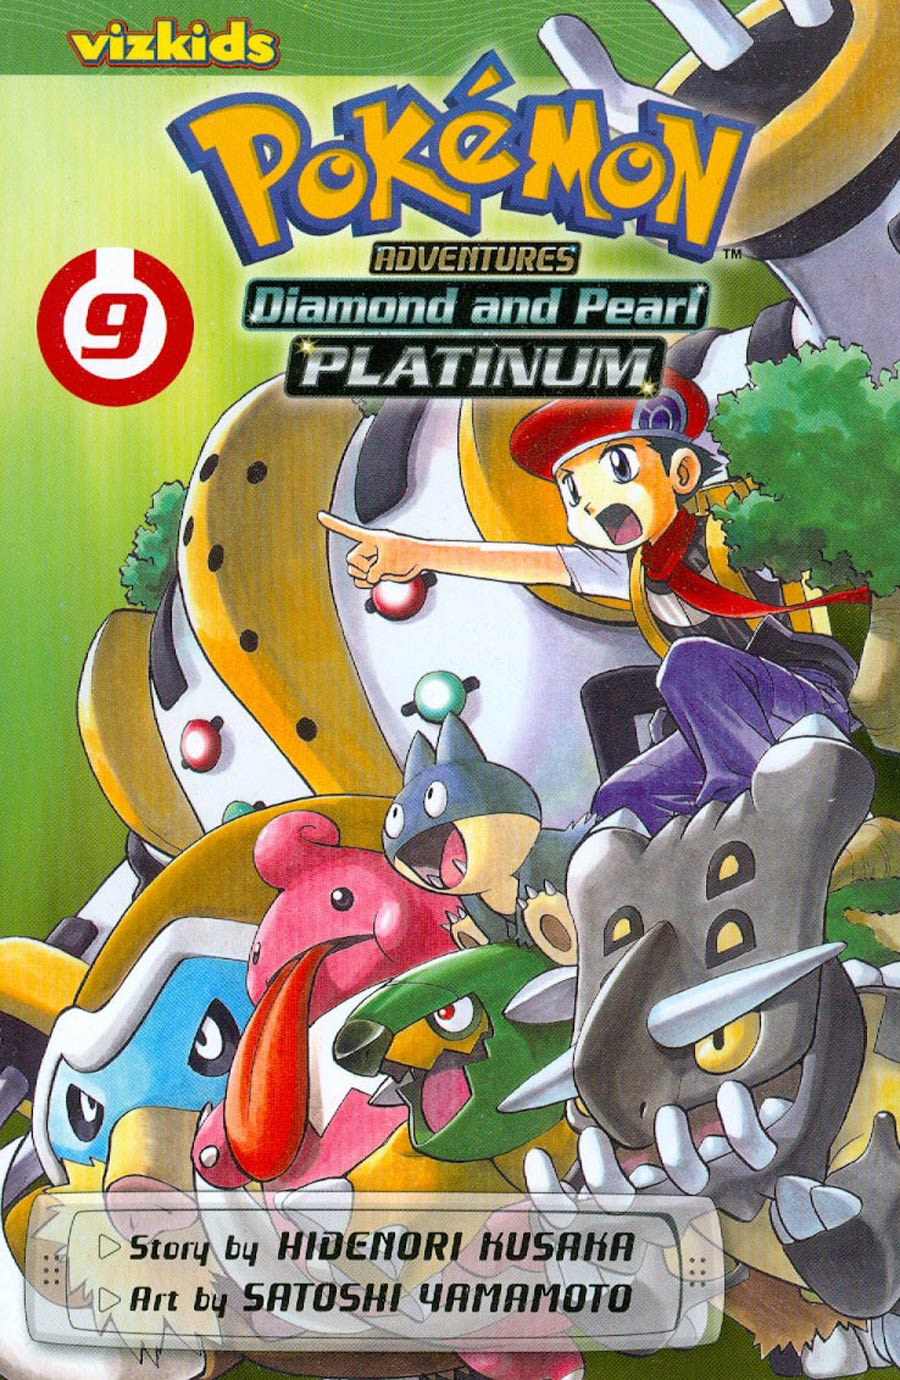 Pokemon Adventures Diamond And Pearl Platinum Vol 9 GN